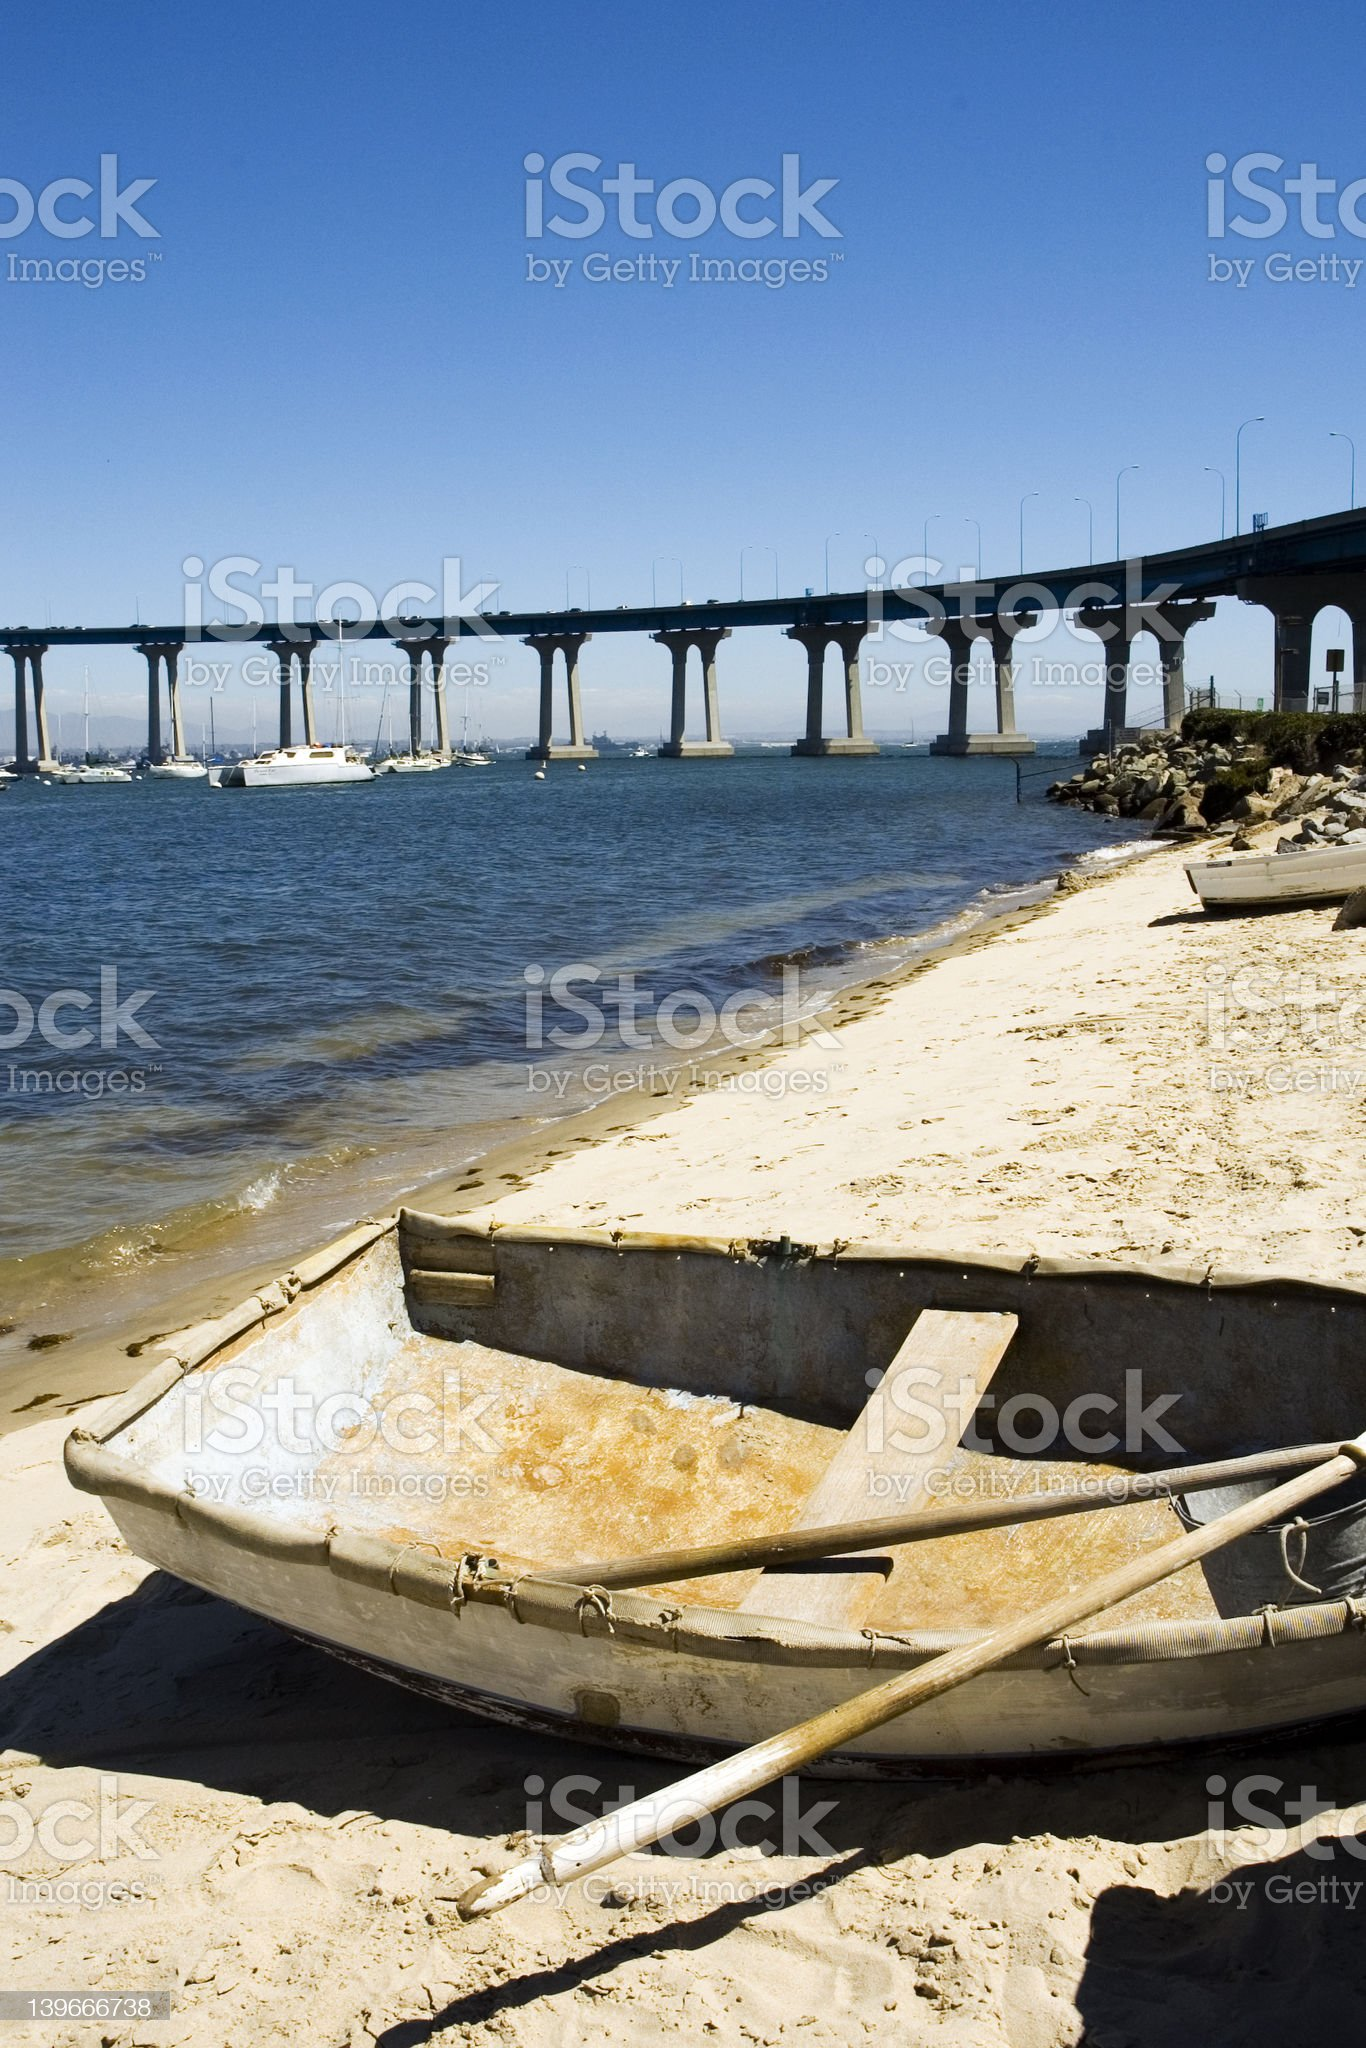 old rowboat on a shore royalty-free stock photo